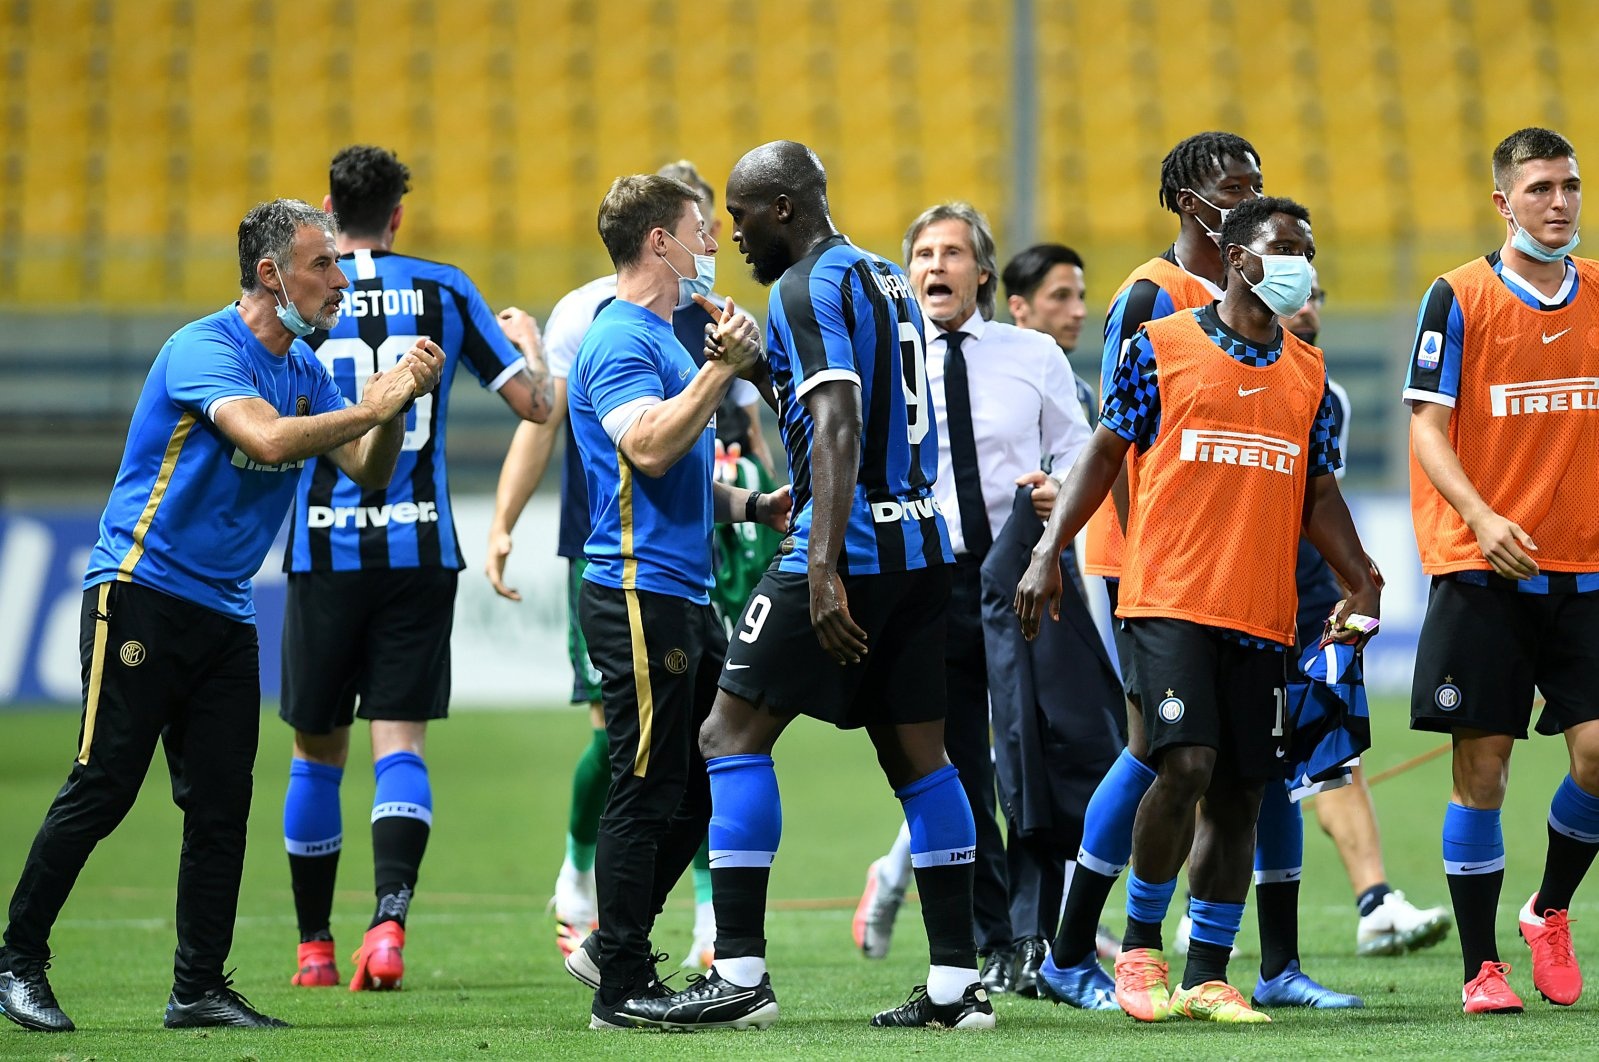 Inter Milan manager Gabriele Oriali with players after the Serie A match in Parma, Italy, June 28, 2020. (Reuters Photo)